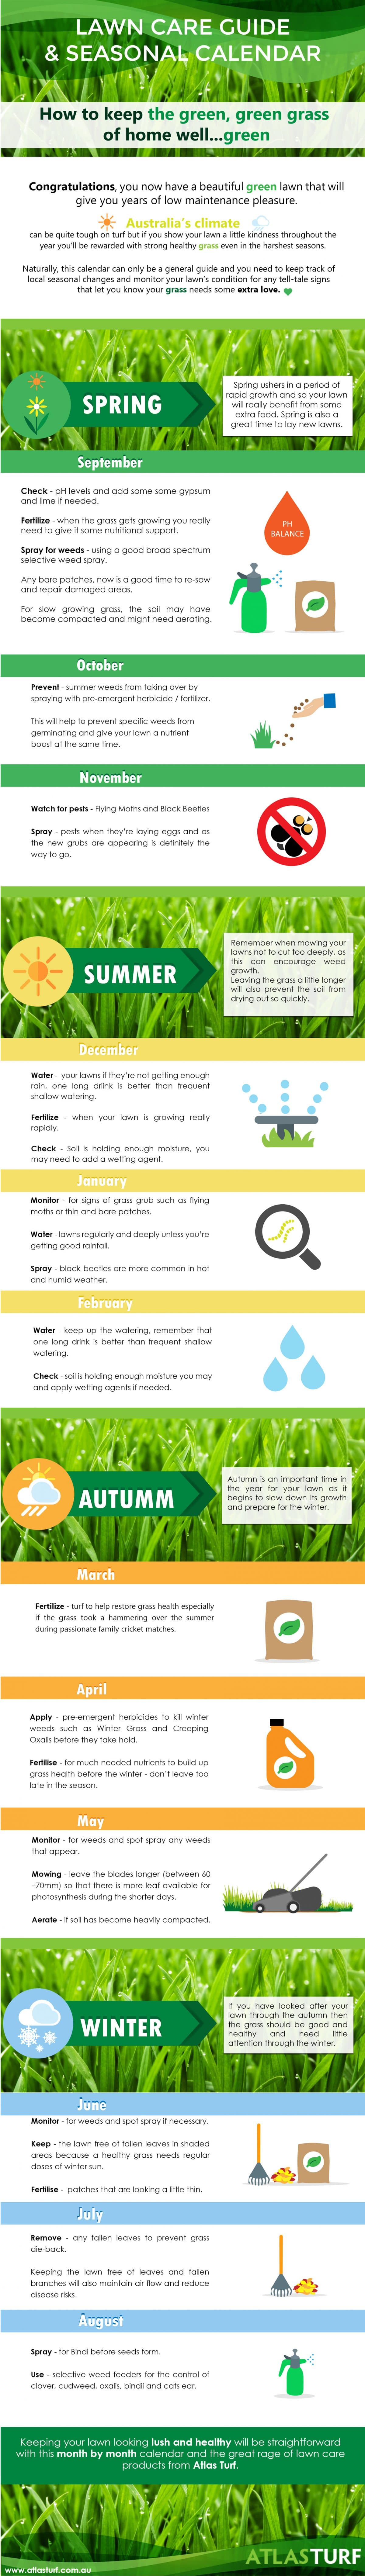 lawn care guide infographic